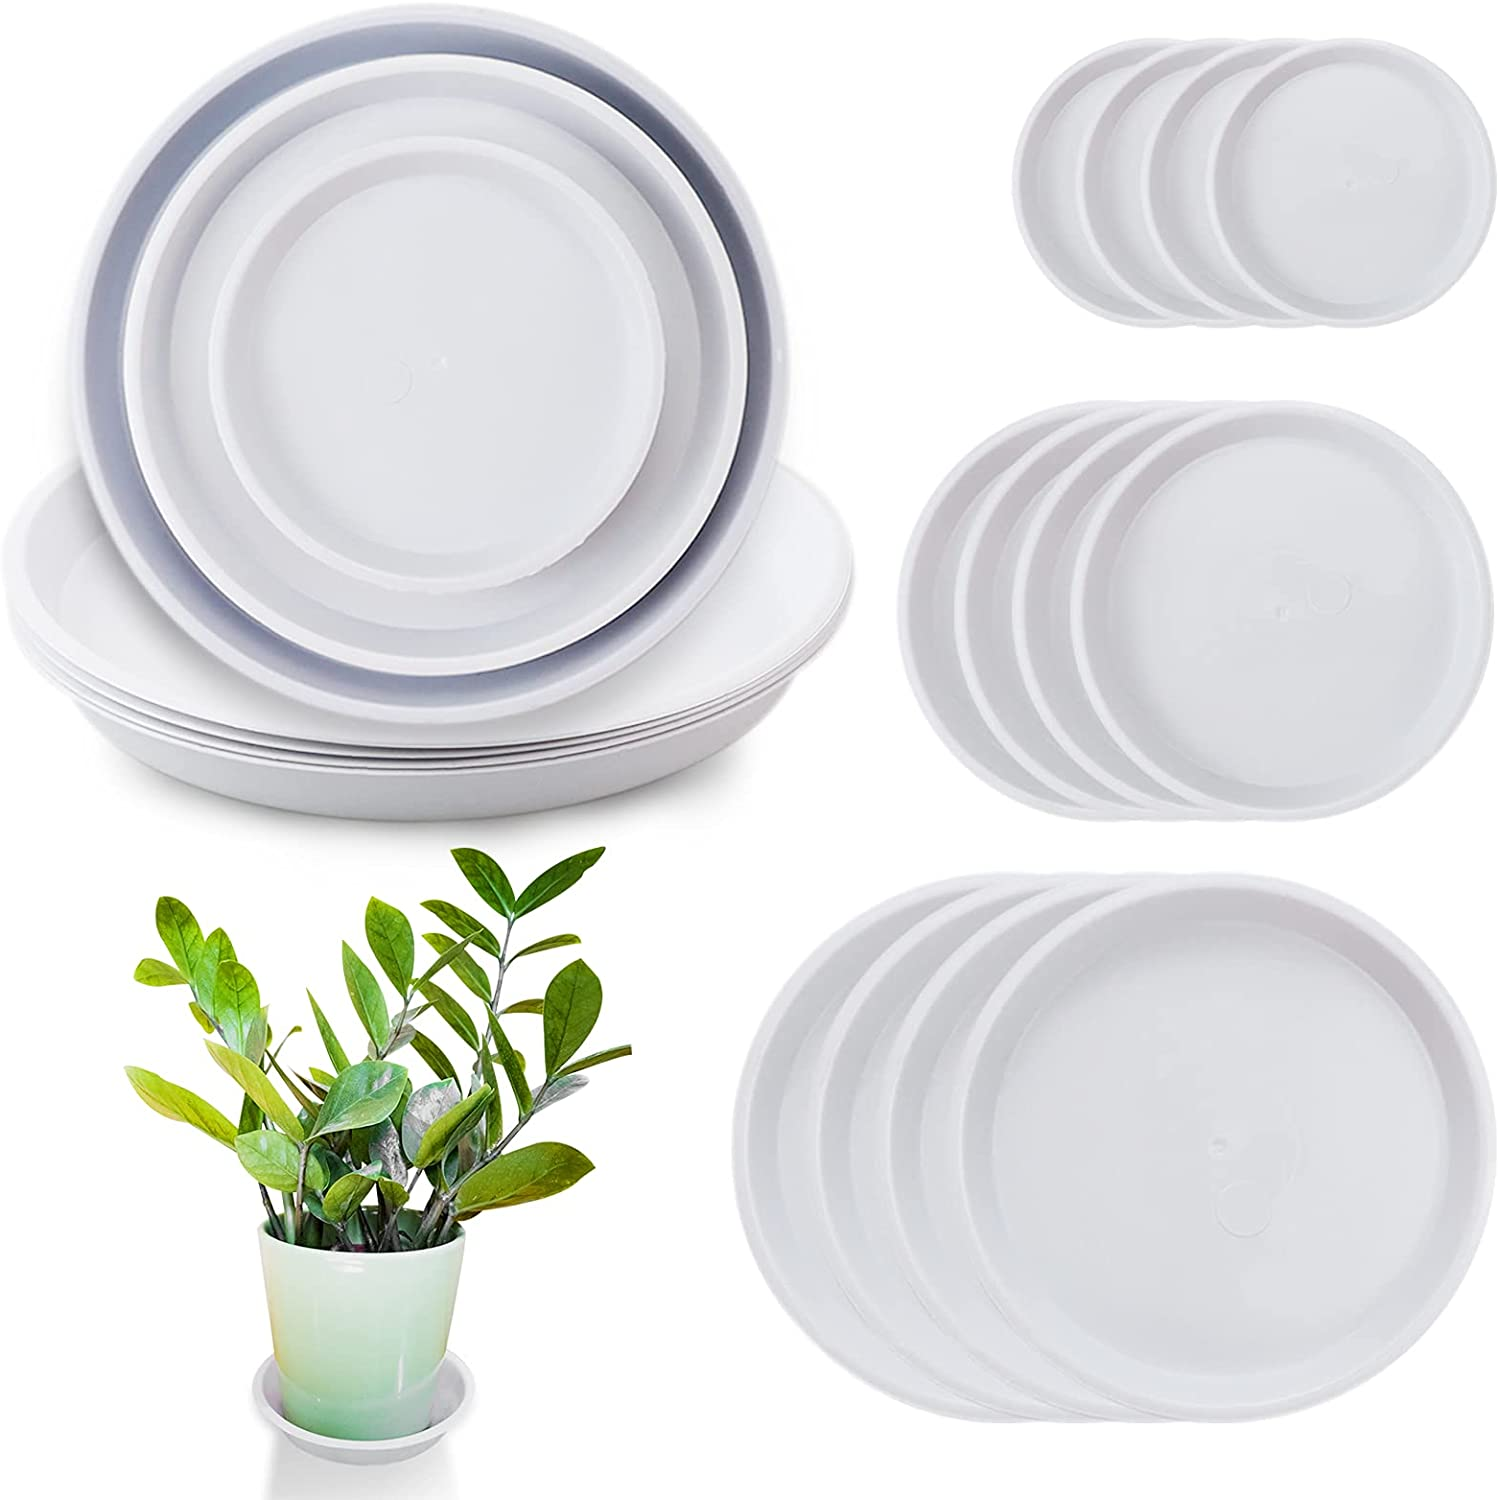 Sc0nni 12 Pack Plastic White Round Wave Plant Saucer,Durable Heavy Duty Flower Plant Pot Drip Tray Container for Home Garden Indoor and Out Door Plant (6 Inch/8.5 Inch/10 Inch)